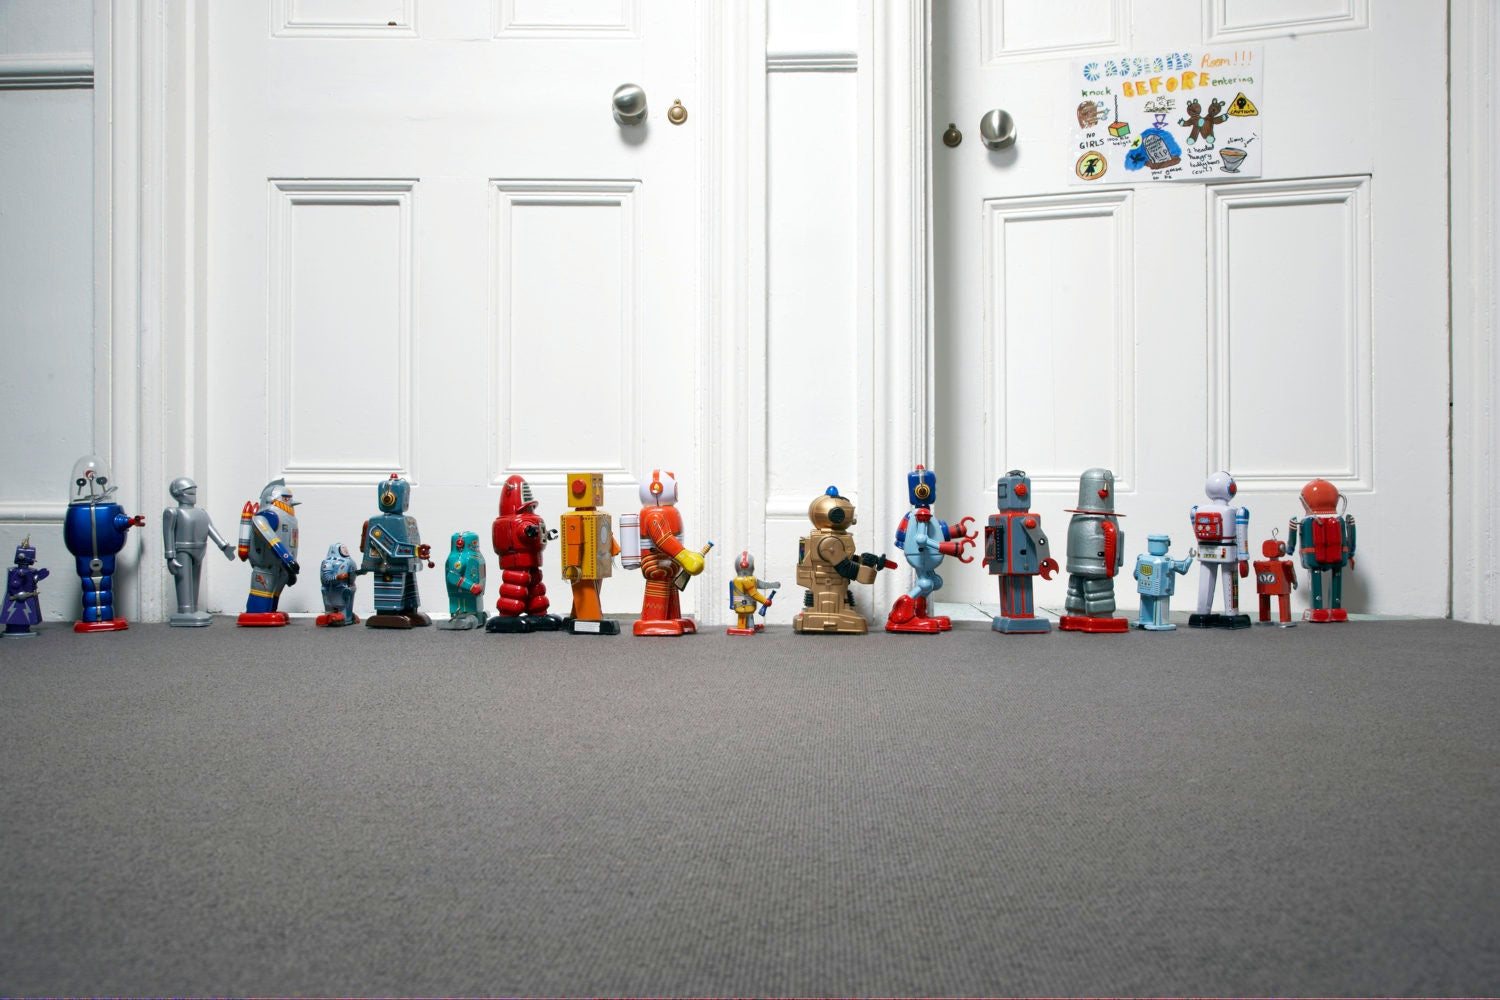 Robot toys arranged in a sequence